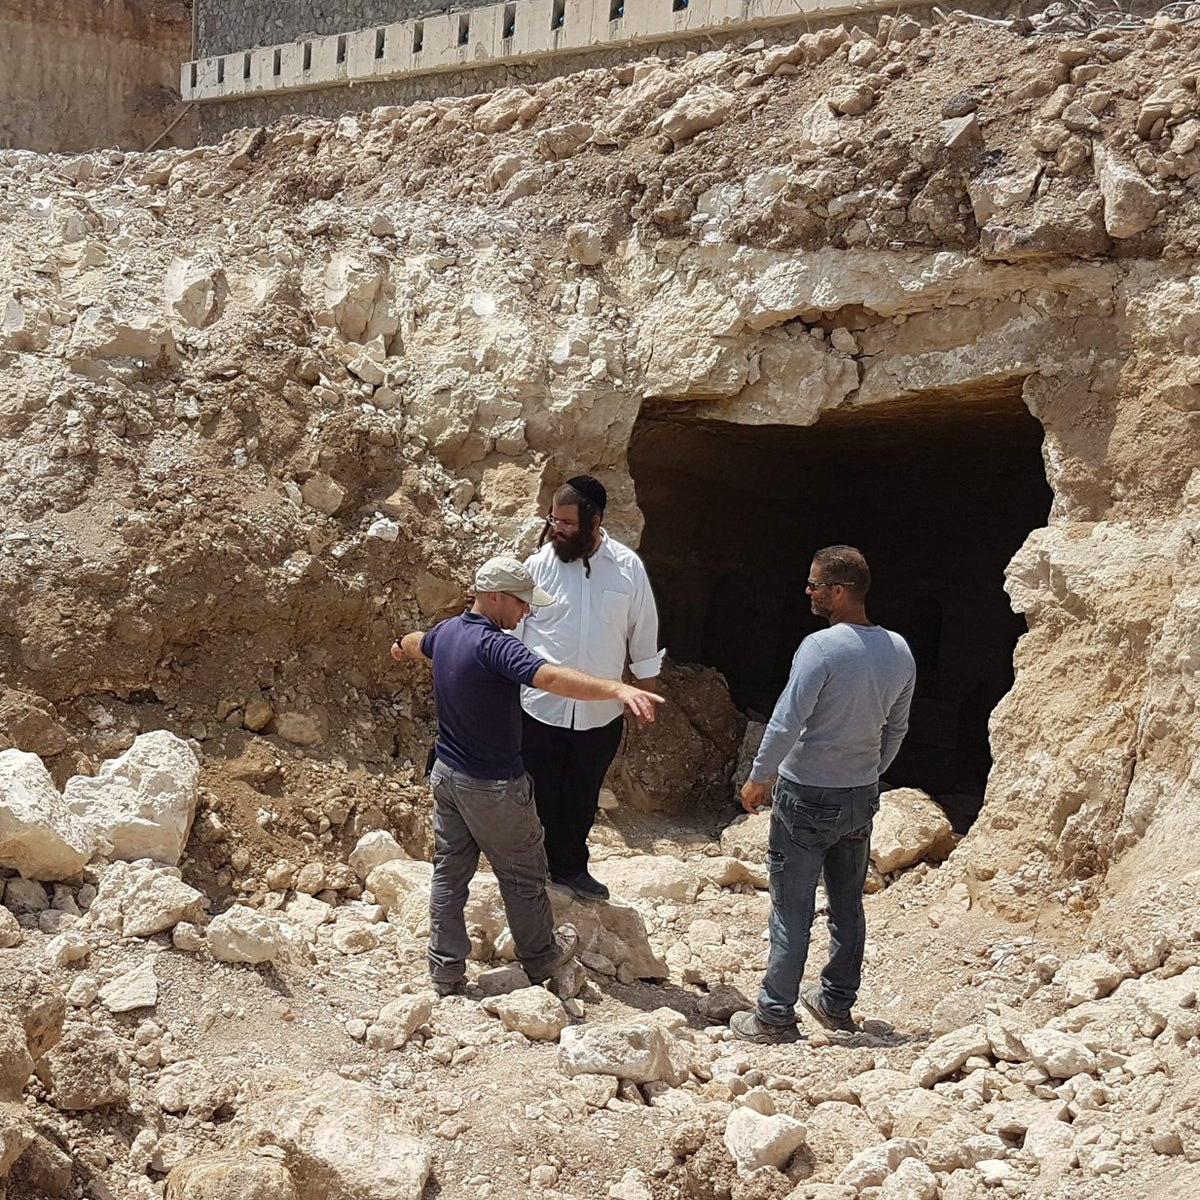 And there it was: Jewish catacomb found in Tiberias.